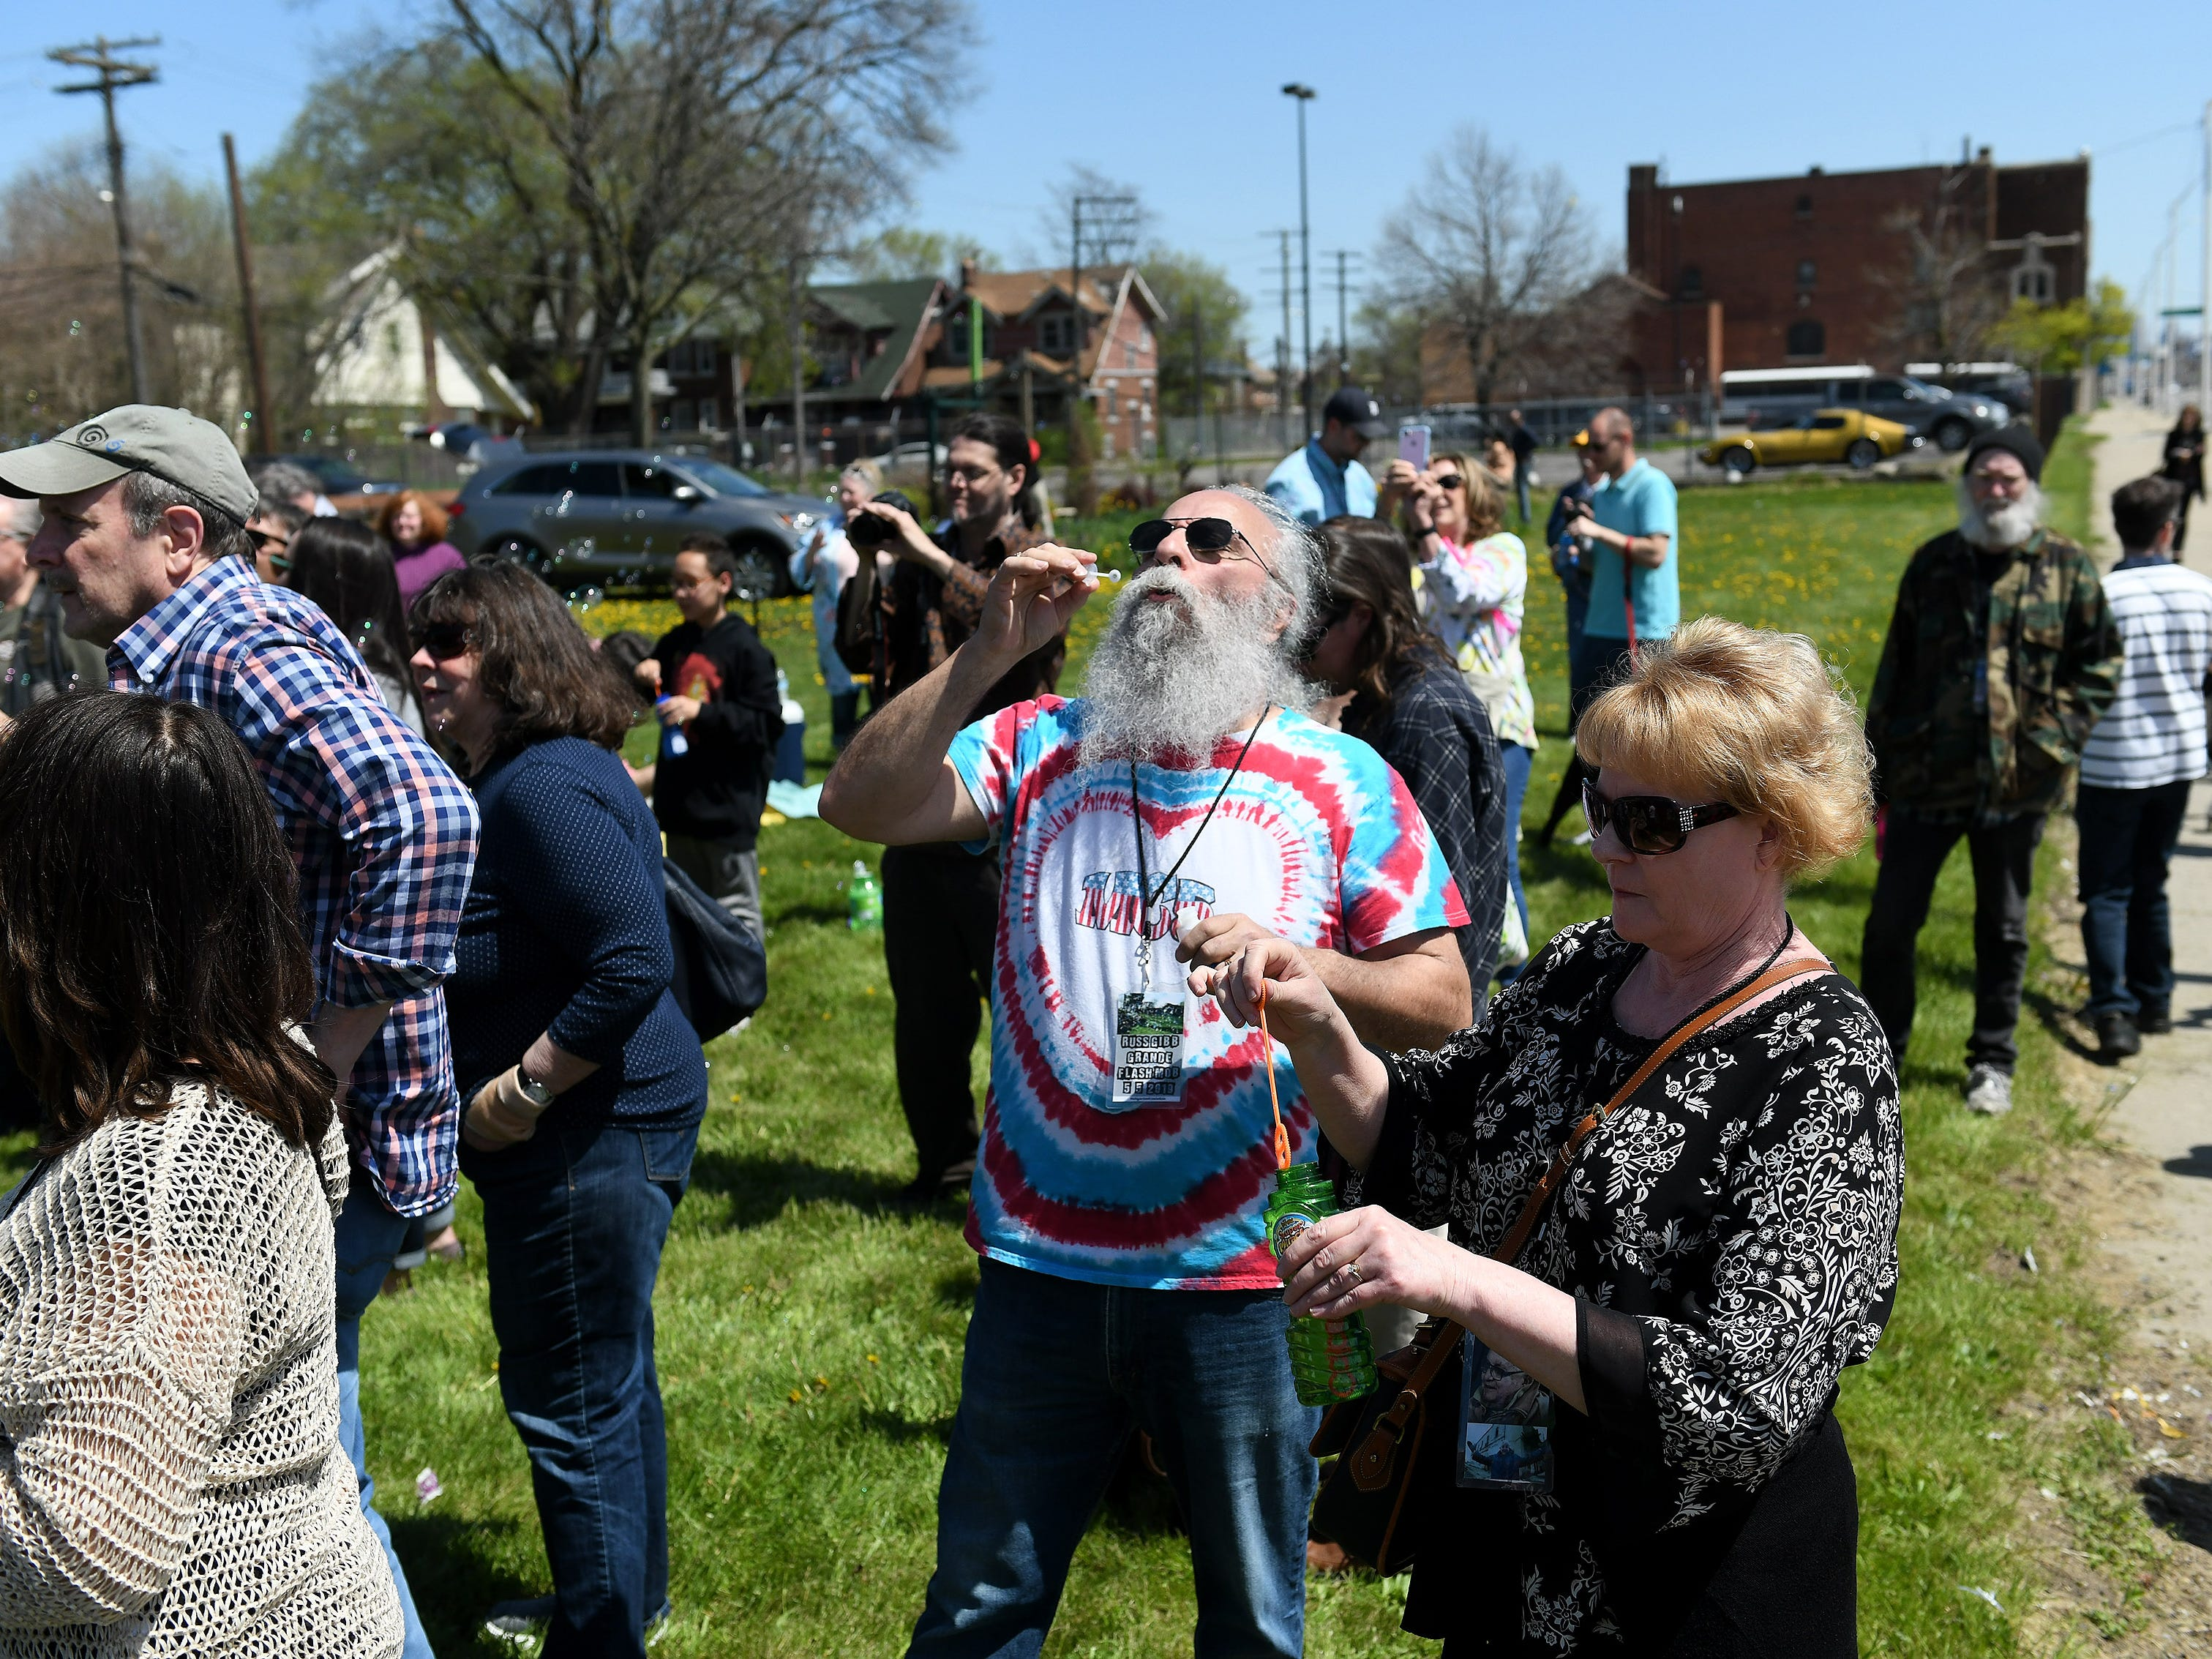 Joe and Kelly Cusumano of Warren blow bubbles as people gather to celebrate the life of Russ Gibb outside the Grande Ballroom.